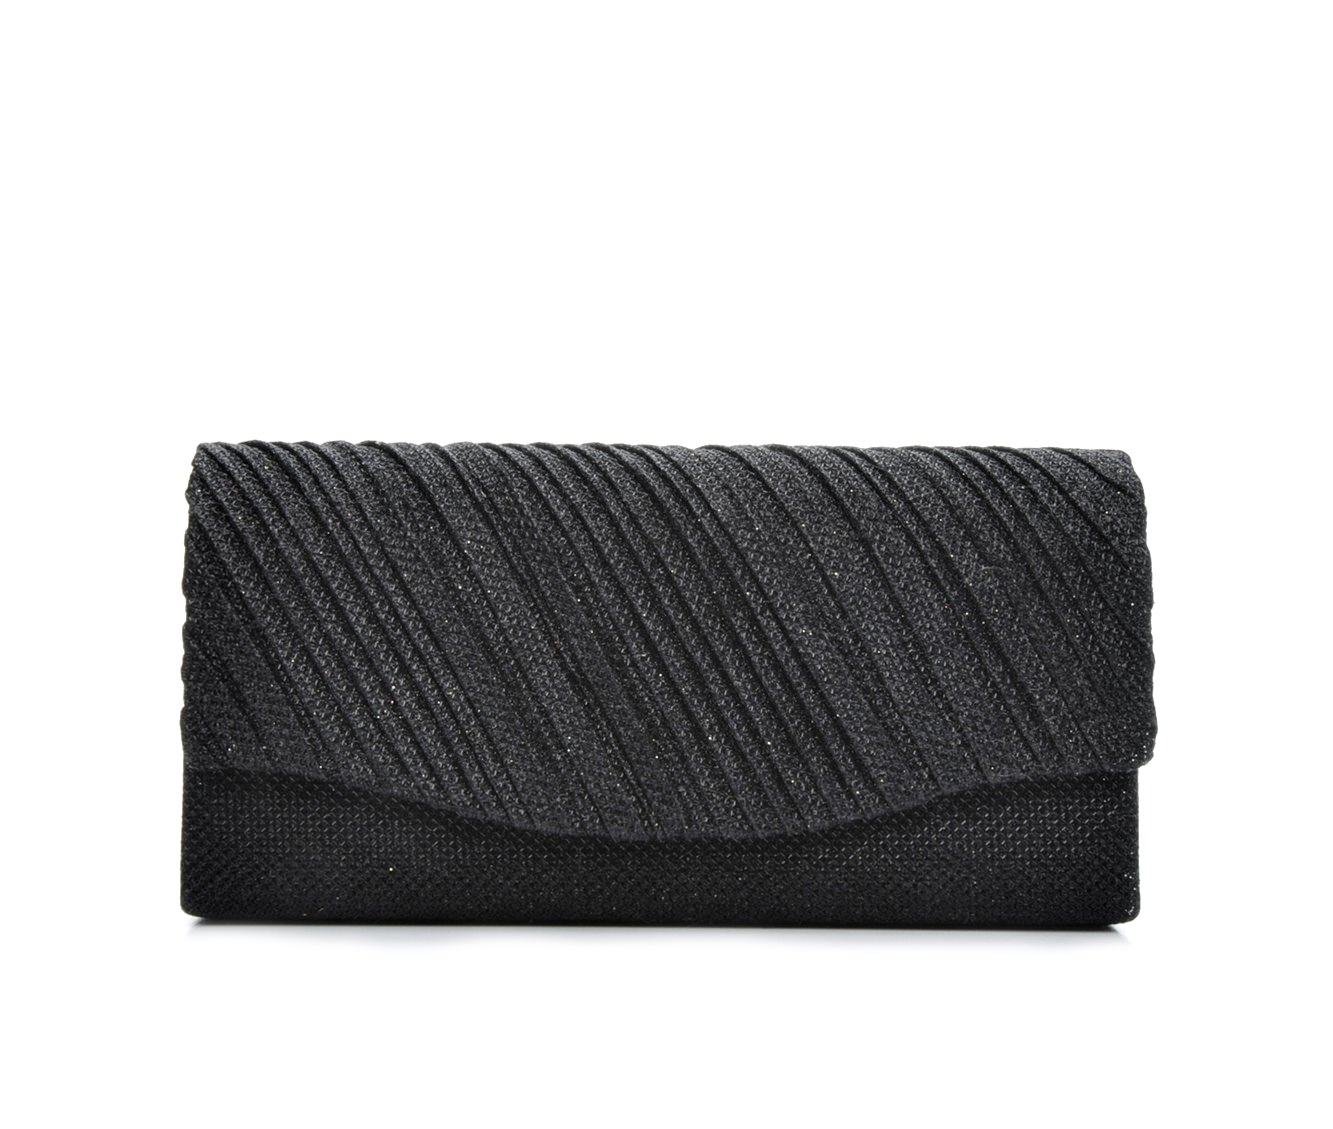 Four Seasons Handbags Small Diagonal Stripe Evening Clutch (Black)